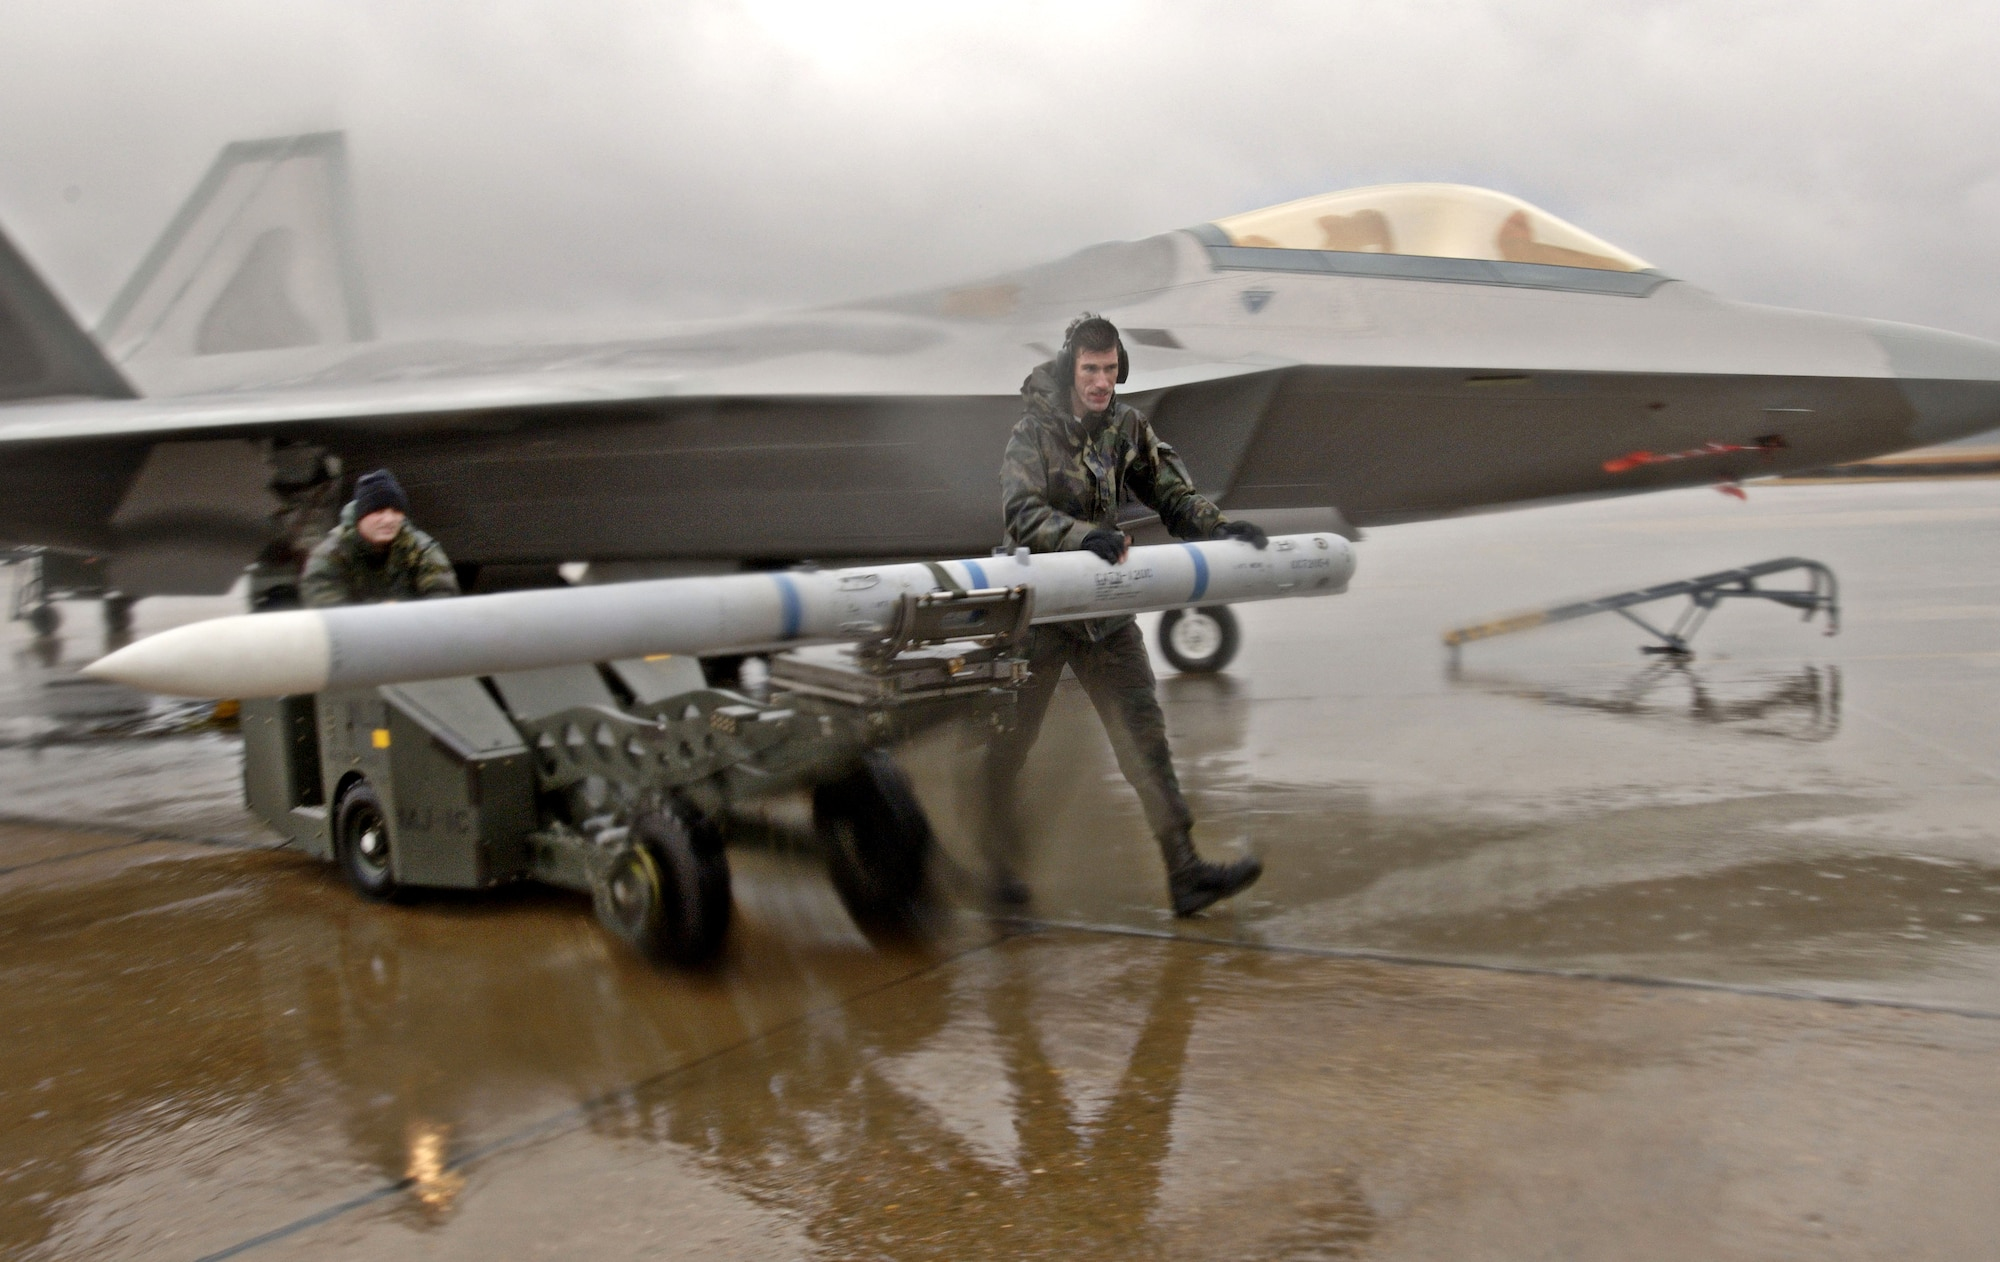 LANGLEY AIR FORCE BASE, Va. -- Senior Airman Michael Breed and Staff Sgt. Scott Robert walk through rain and strong winds with an AIM-120 missile. The missile was removed from an F-22A Raptor during the pre-generation portion of the Phase 1 operational readiness exercise here Jan. 31. (U.S Air Force photo by Staff Sgt. Eric T. Sheler)